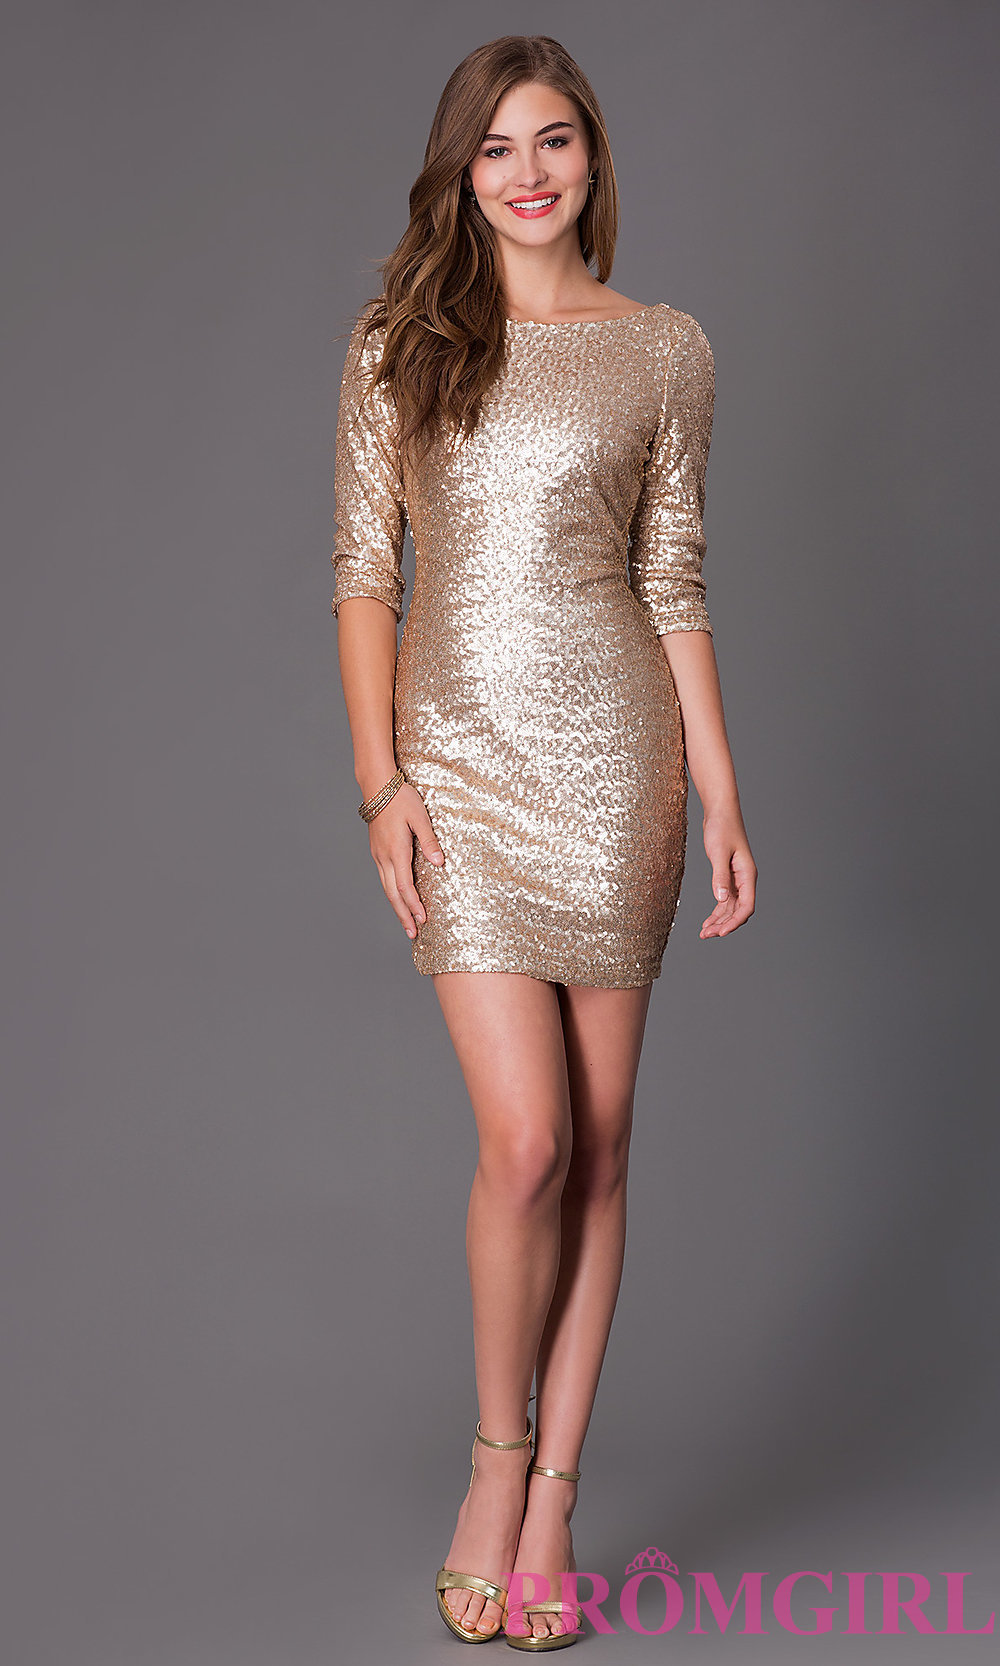 Short Gold Glitter Dress And The Trend Of The Year ...